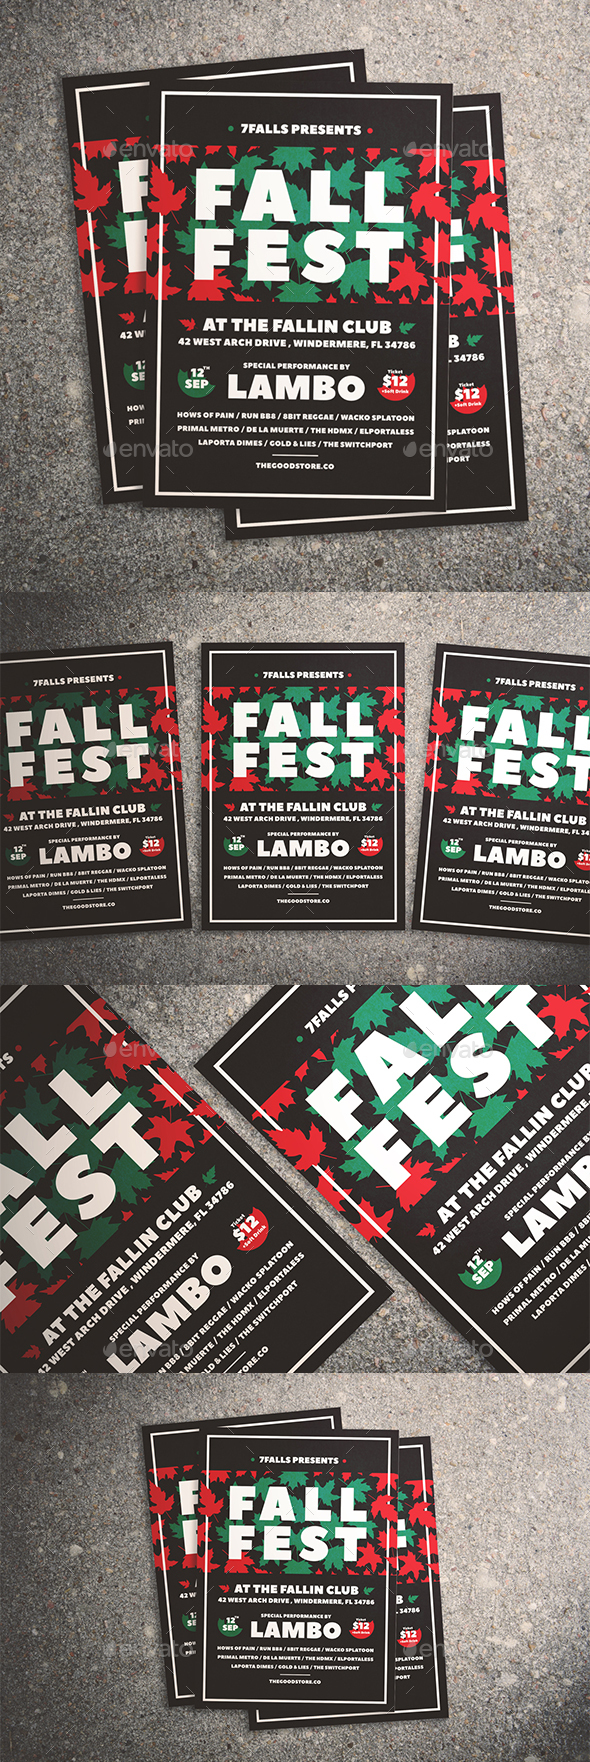 Fall Fest Flyer - Events Flyers